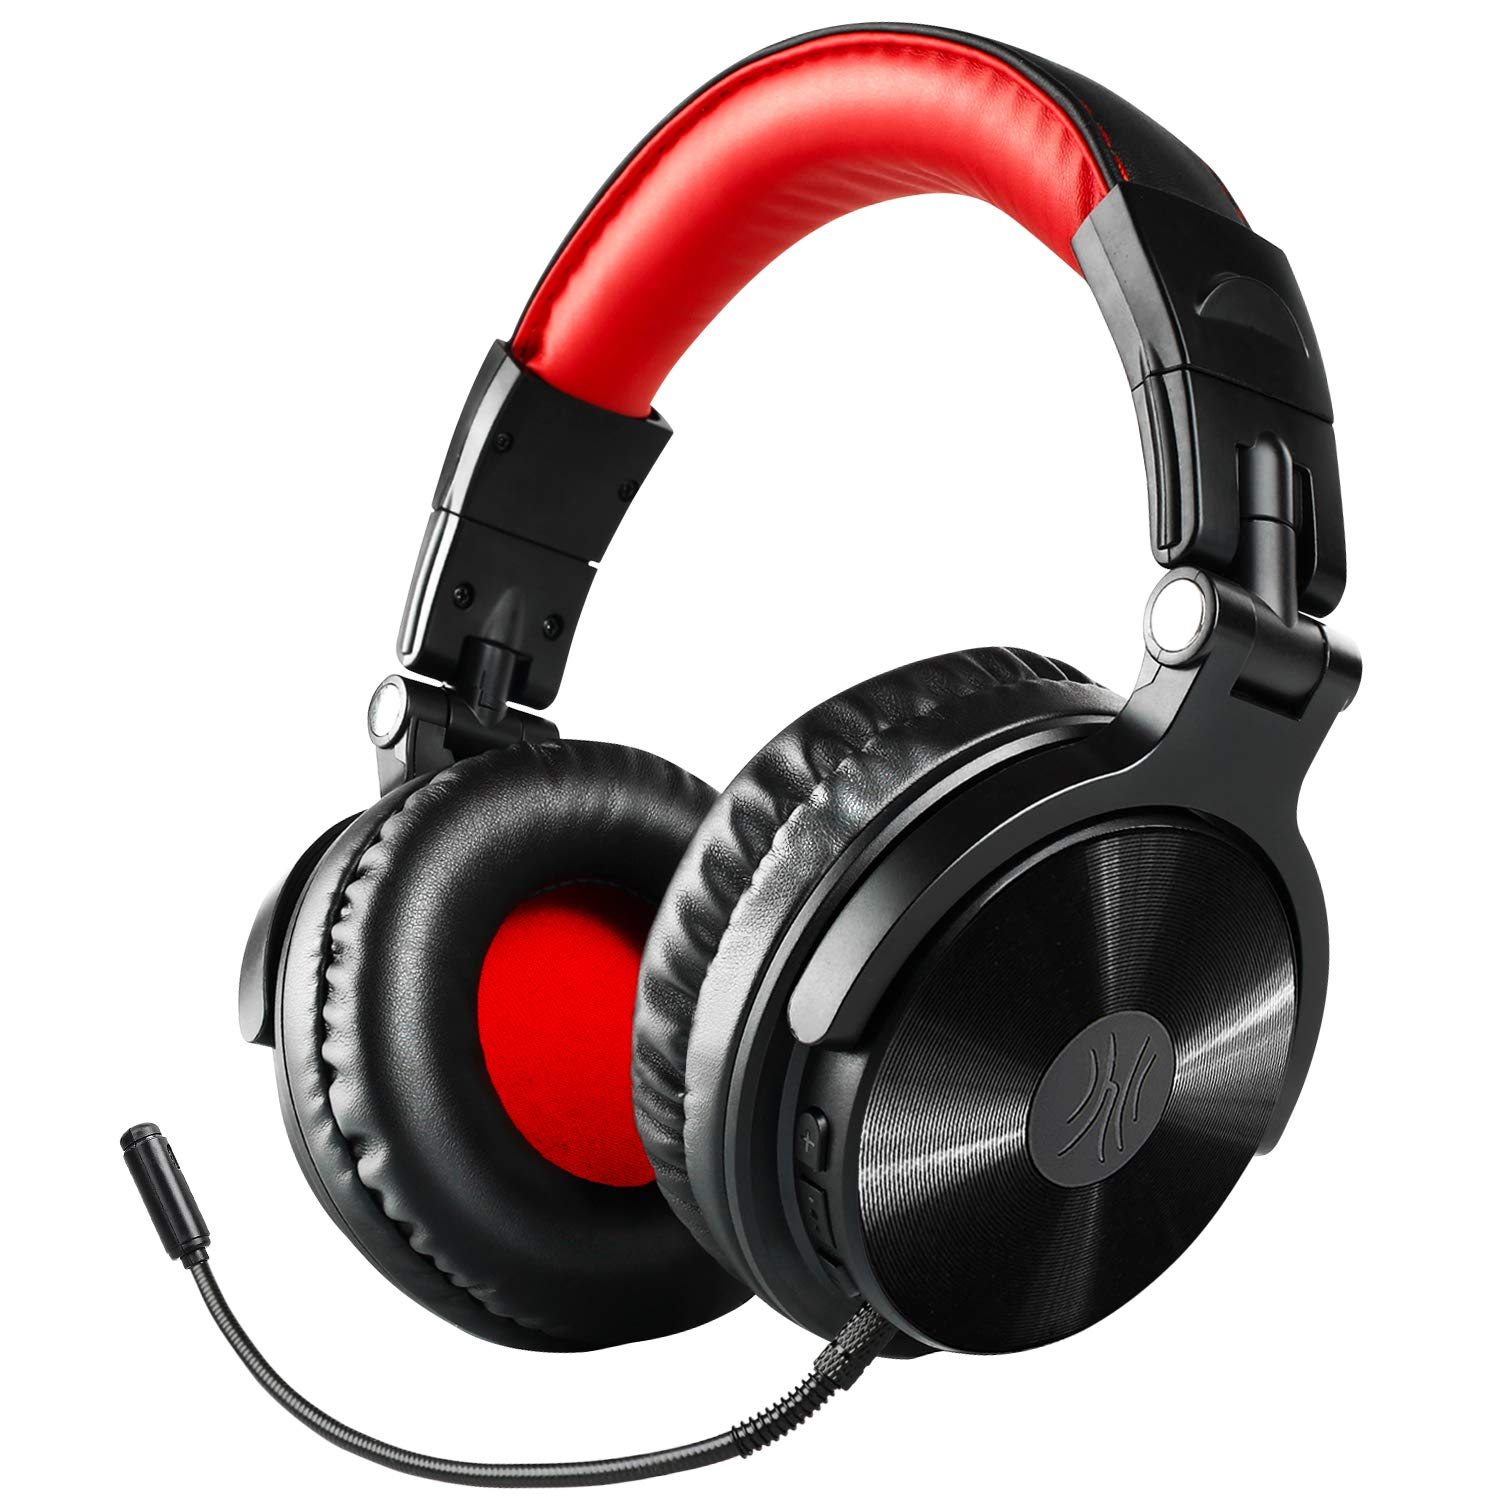 Bluetooth Over Ear Headphones, OneOdio Wired Gaming Stereo Headsets w/Detachable Mic for PS4, Xbox one, PC, Cell Phones, Office, Wireless Headset w/ 30 Hrs Play Time - Studio Wireless(Y80B) by OneOdio